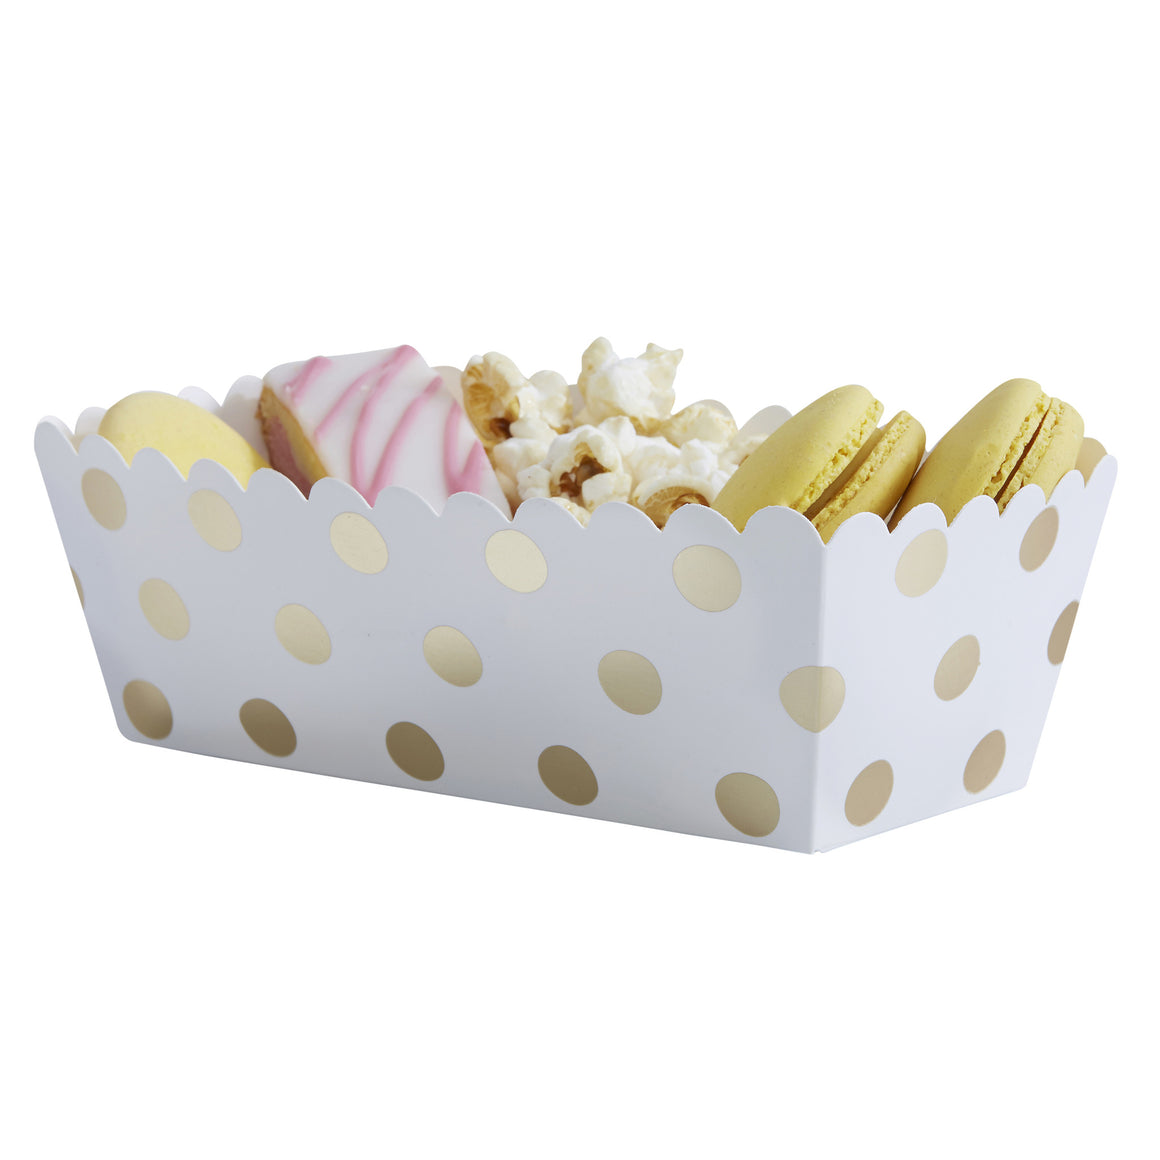 Polka Dot Gold 5 Food Trays